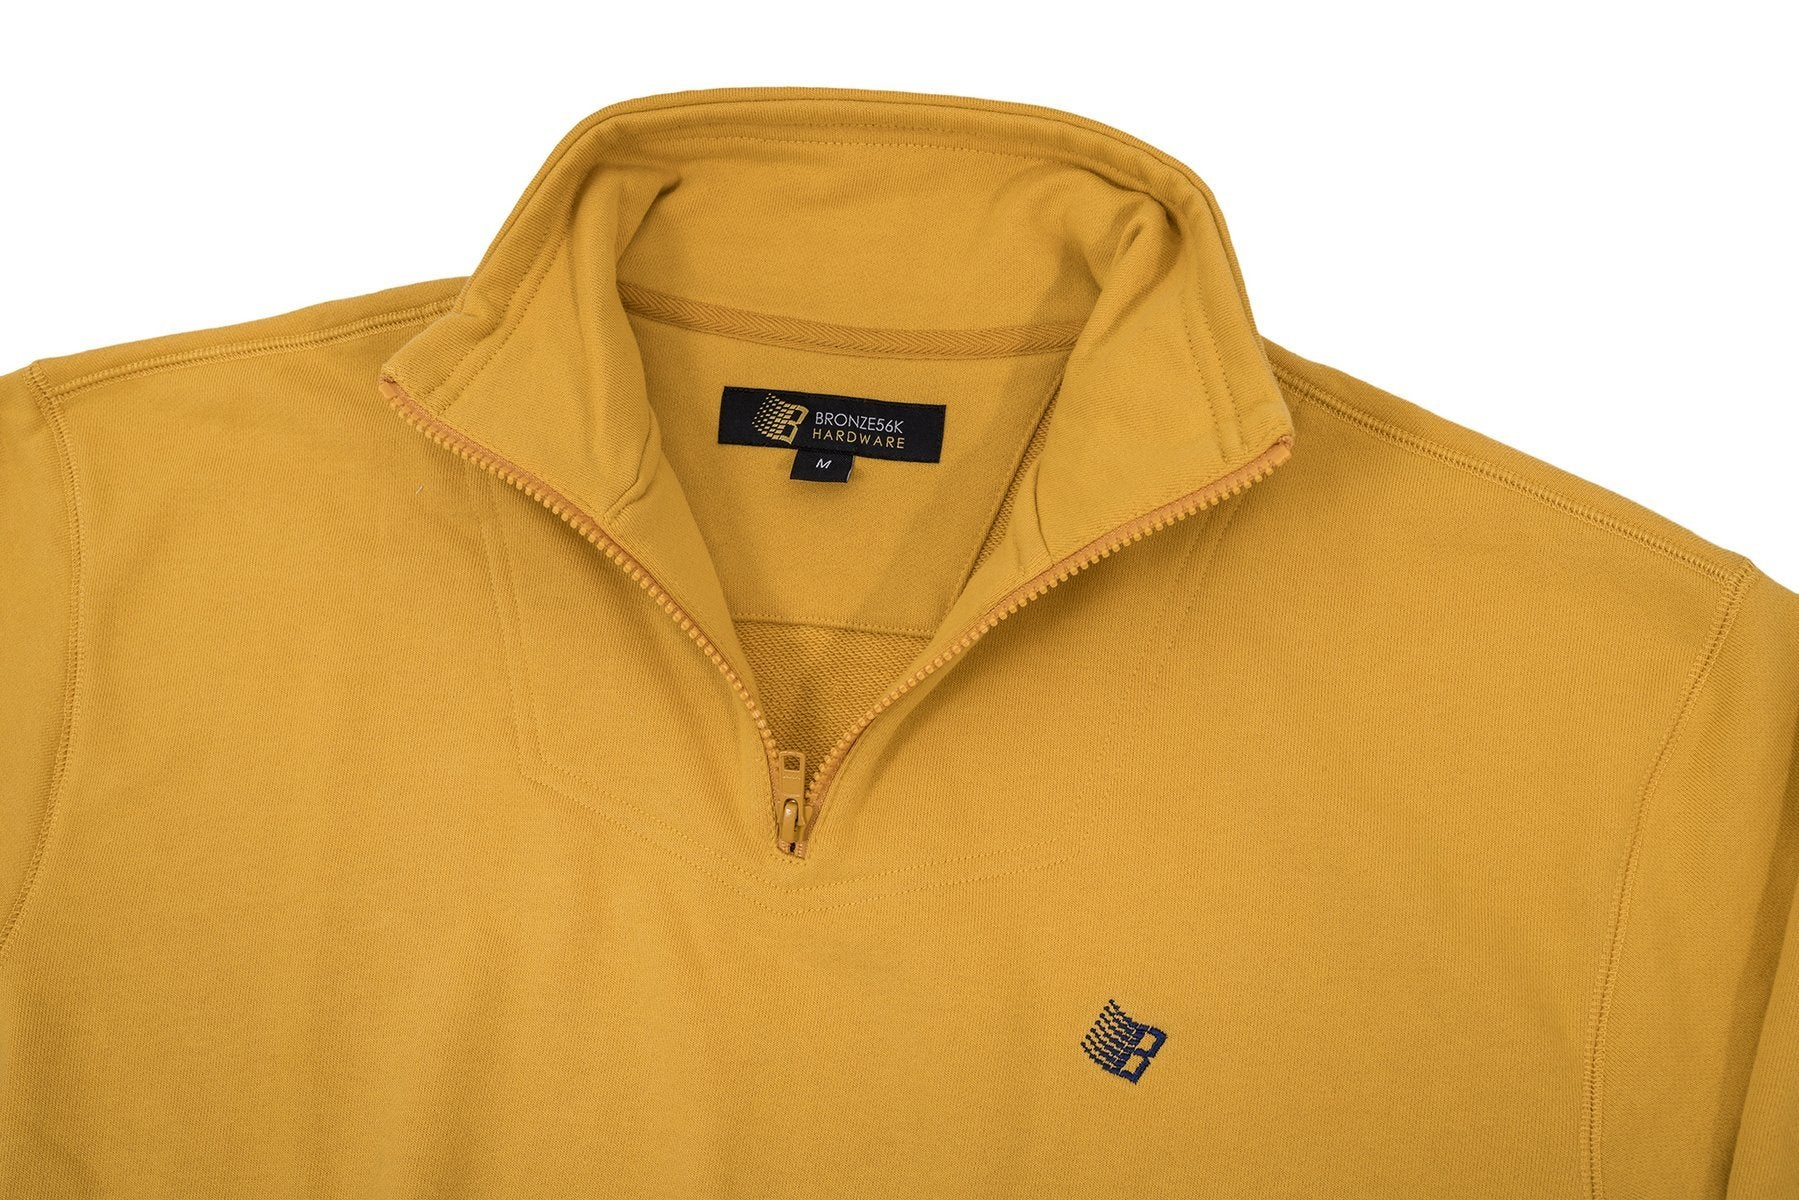 Bronze 56k Microdose 1/4 Zip Product Photo #2